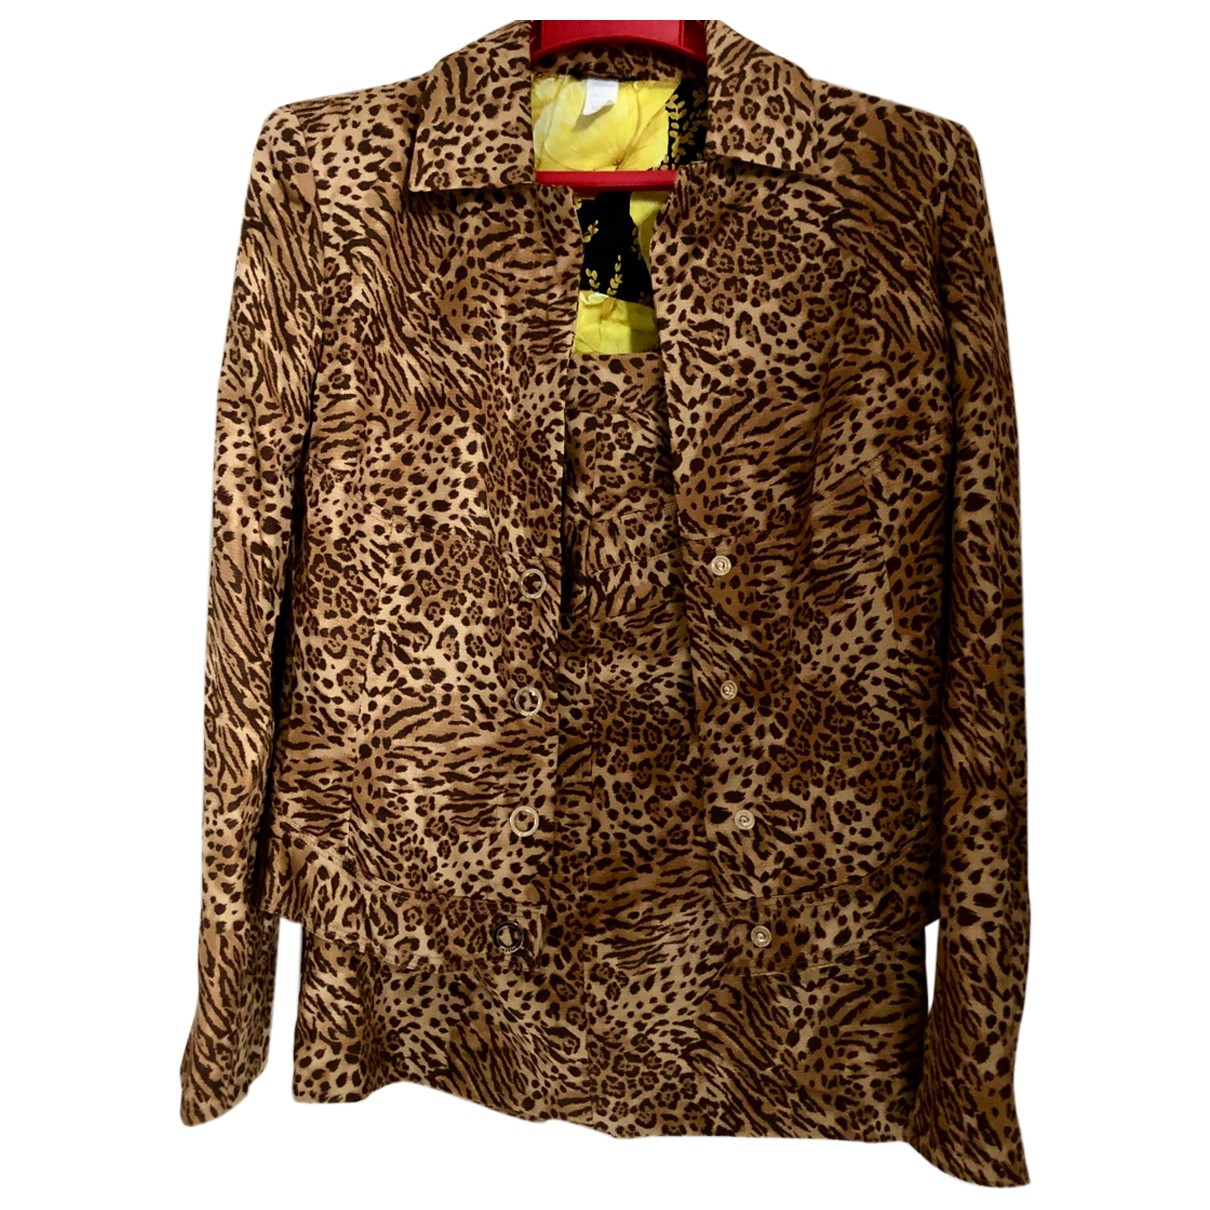 Gianni Versace N Multicolour jacket for Women 44 IT